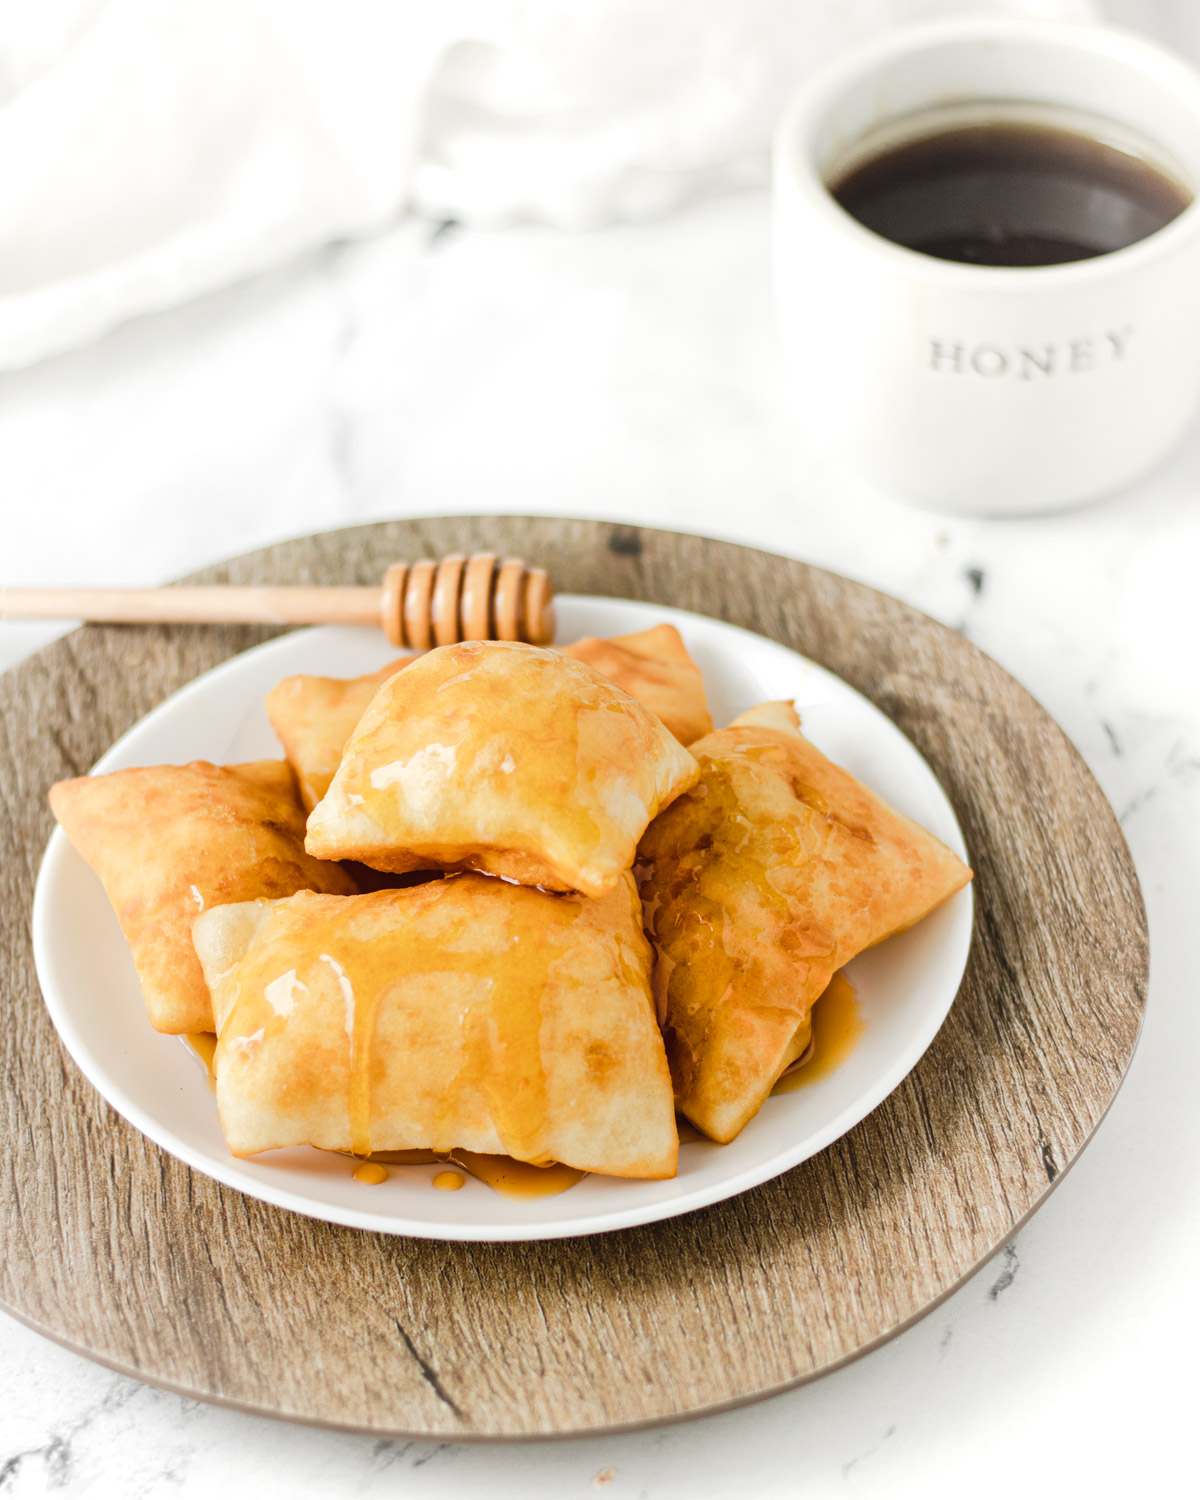 plate of sopapillas with a honey stick resting on plate and bowl of honey in background.